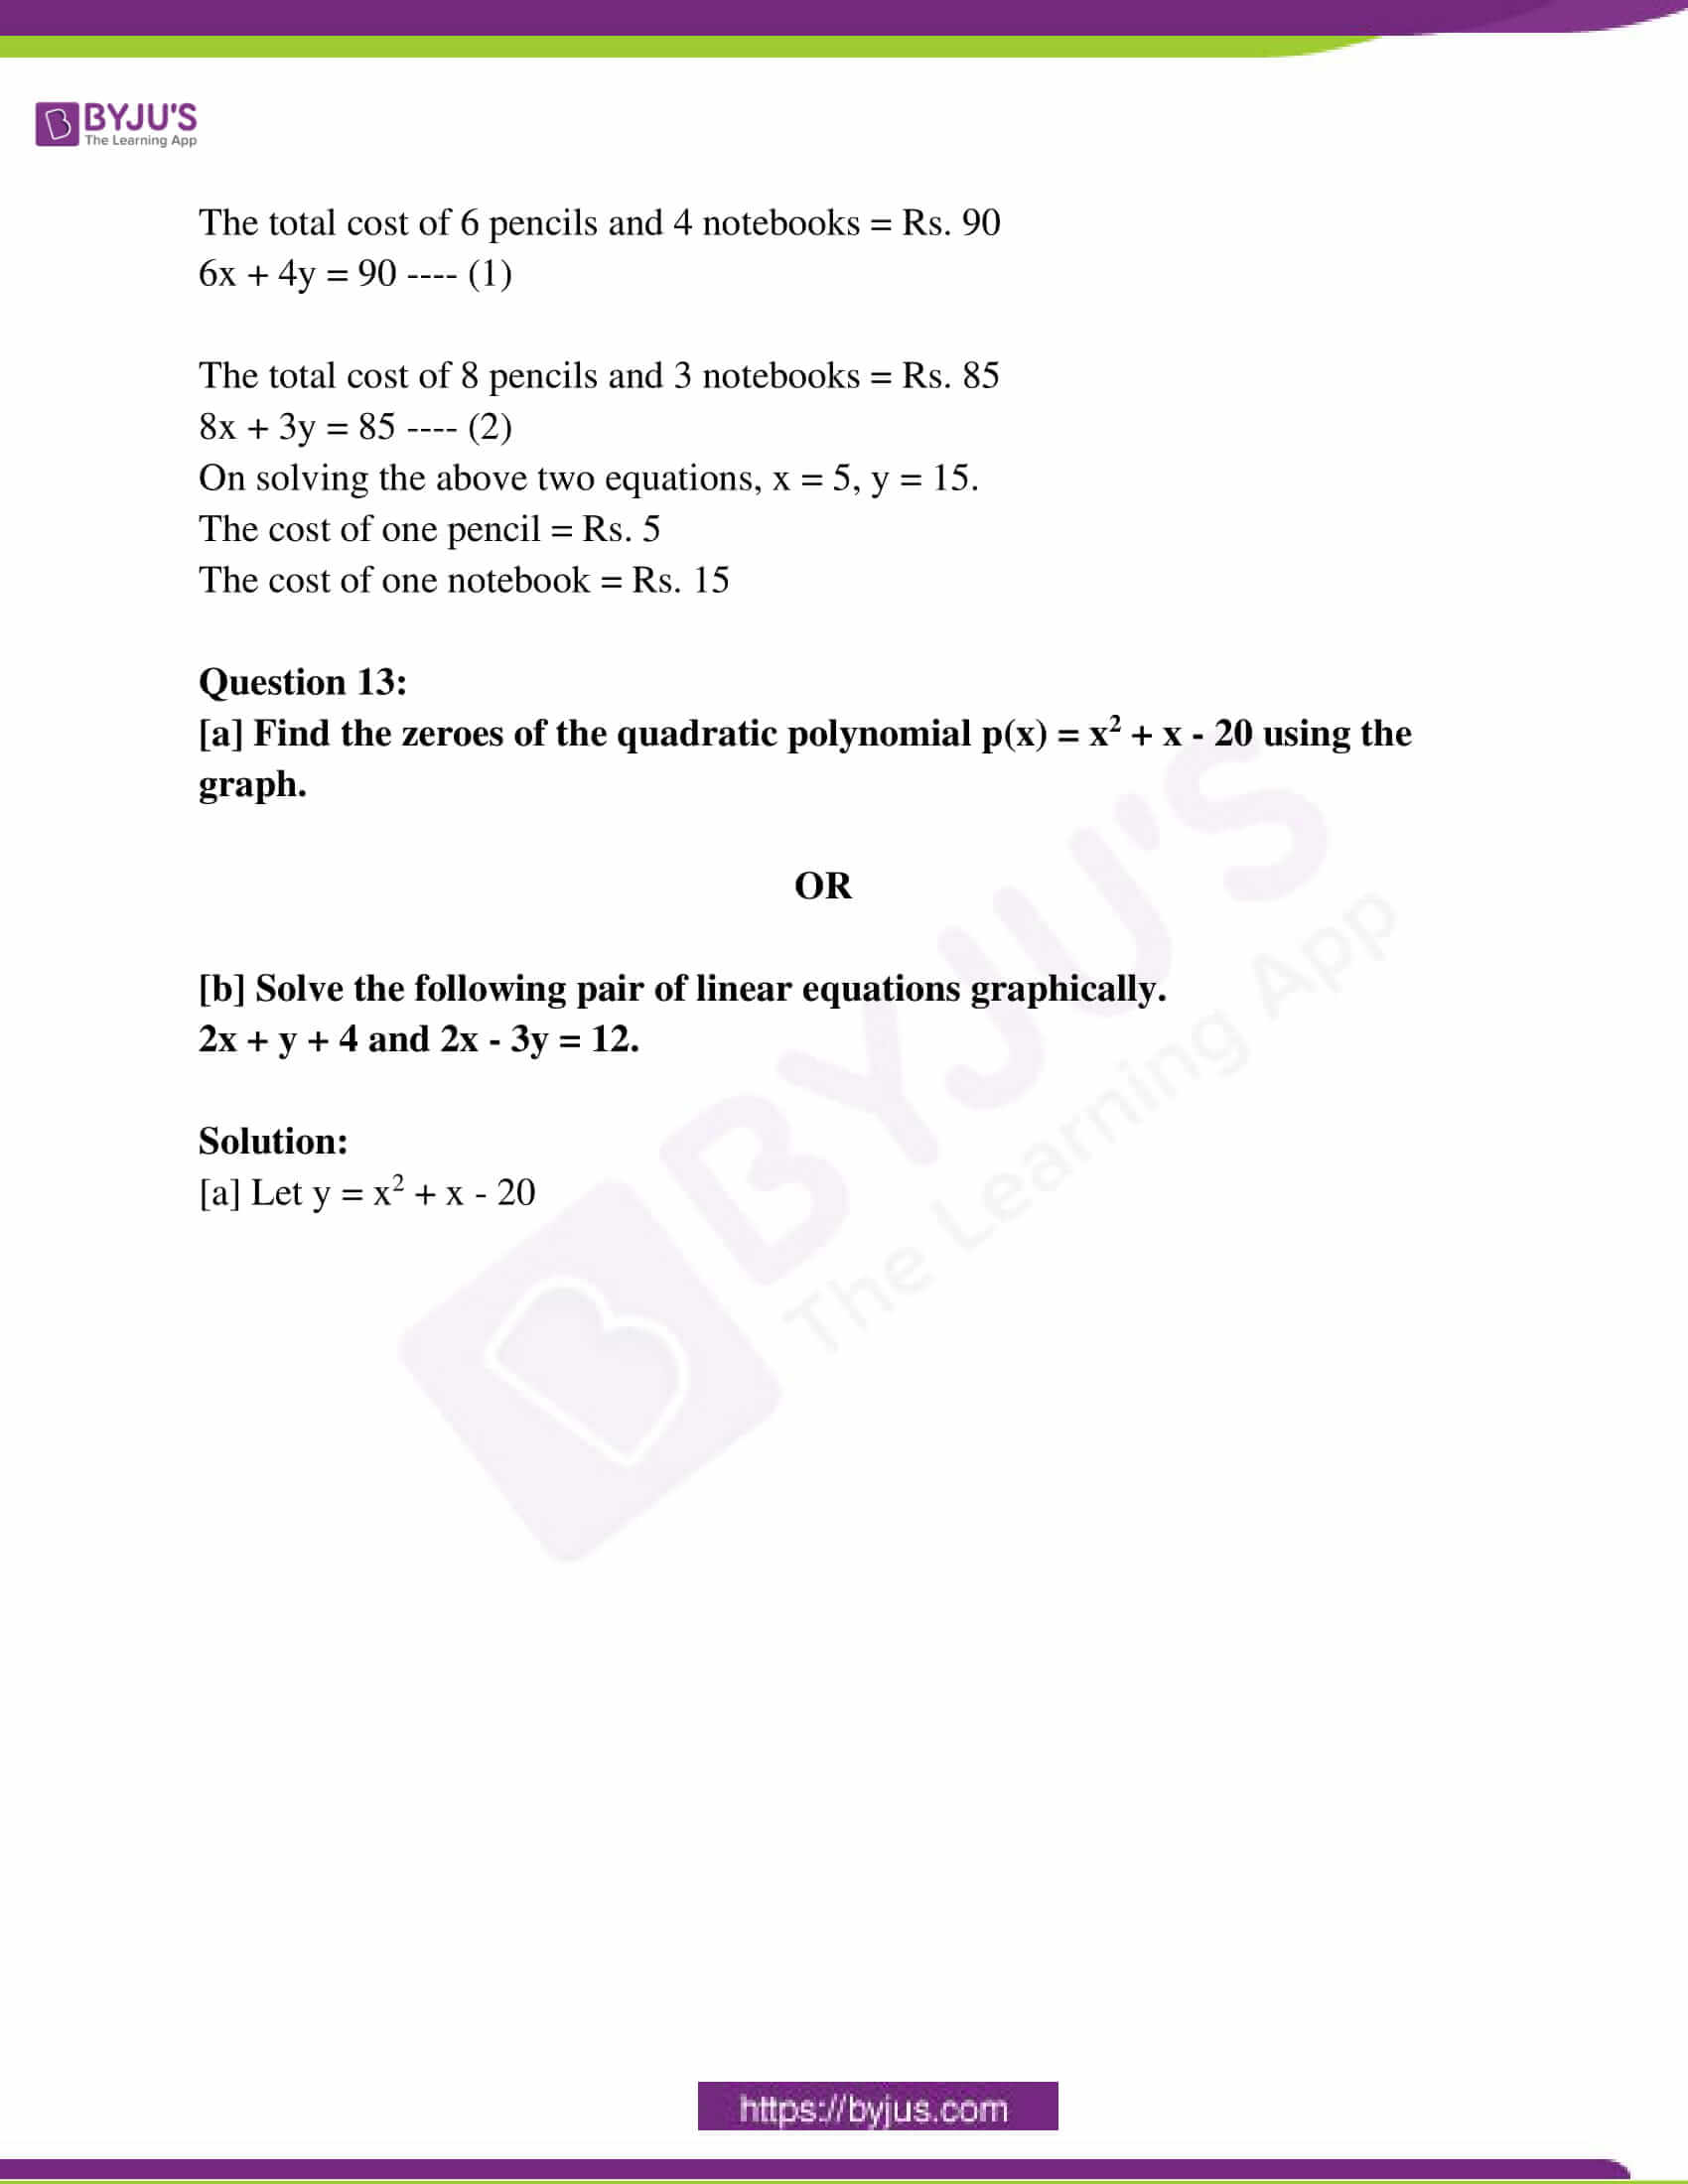 ap class 10 maths question paper 1 sol march 2019 08